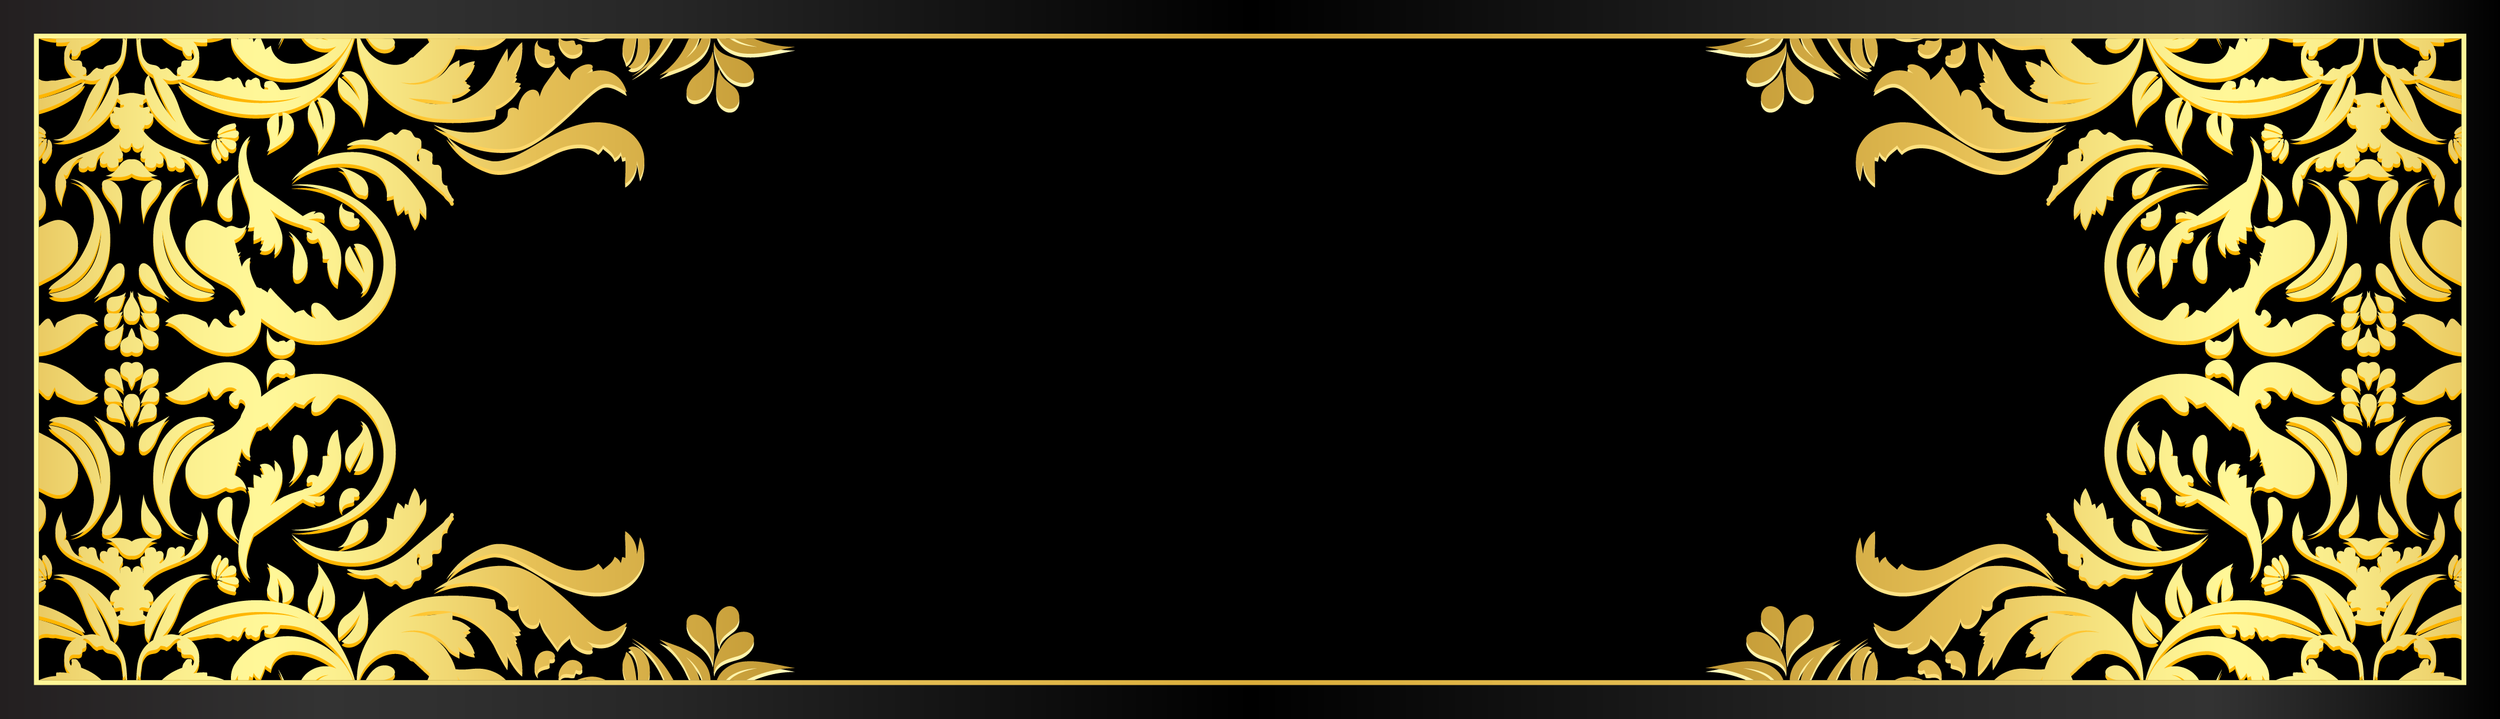 black and gold frame png. Certificate_ornament_leaf_gold_black.png Black And Gold Frame Png